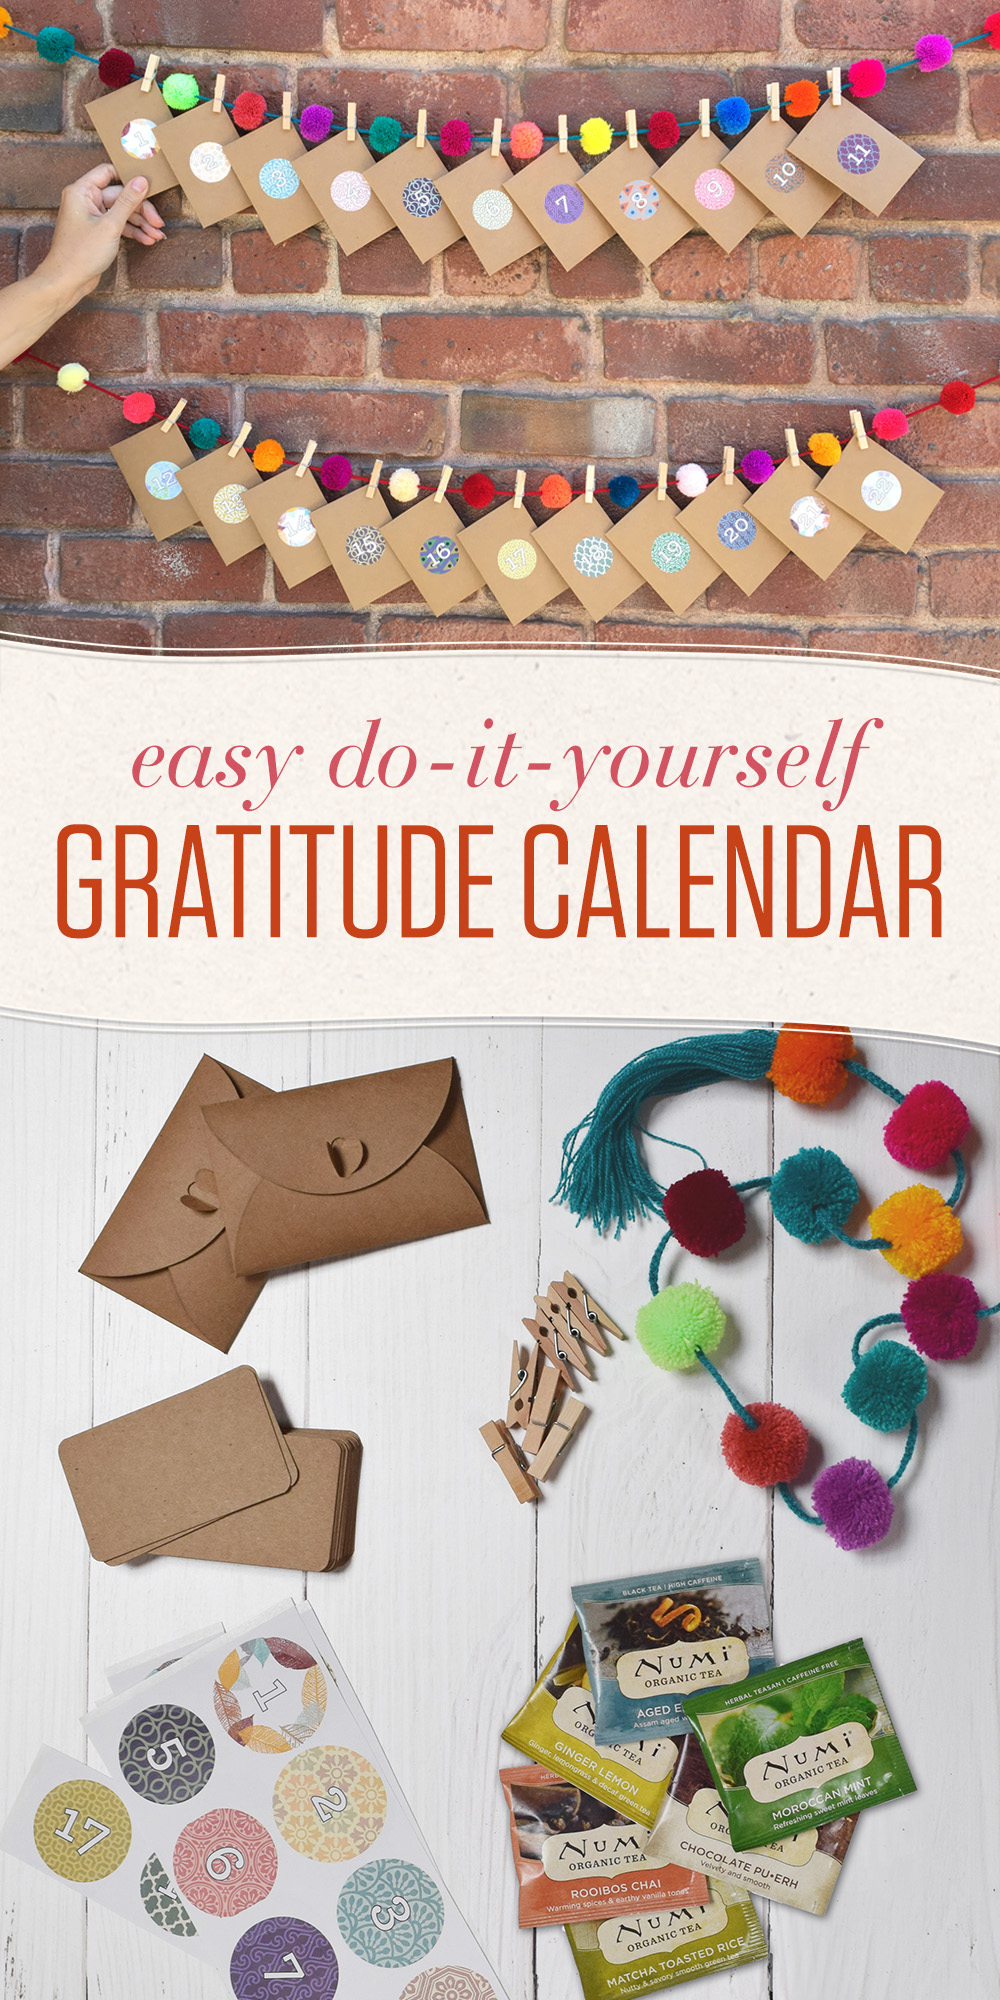 This easy do-it-yourself Gratitude Calendar is a fun way to cultivate an attitude of gratitude, leading to greater happiness and overall well-being.💕